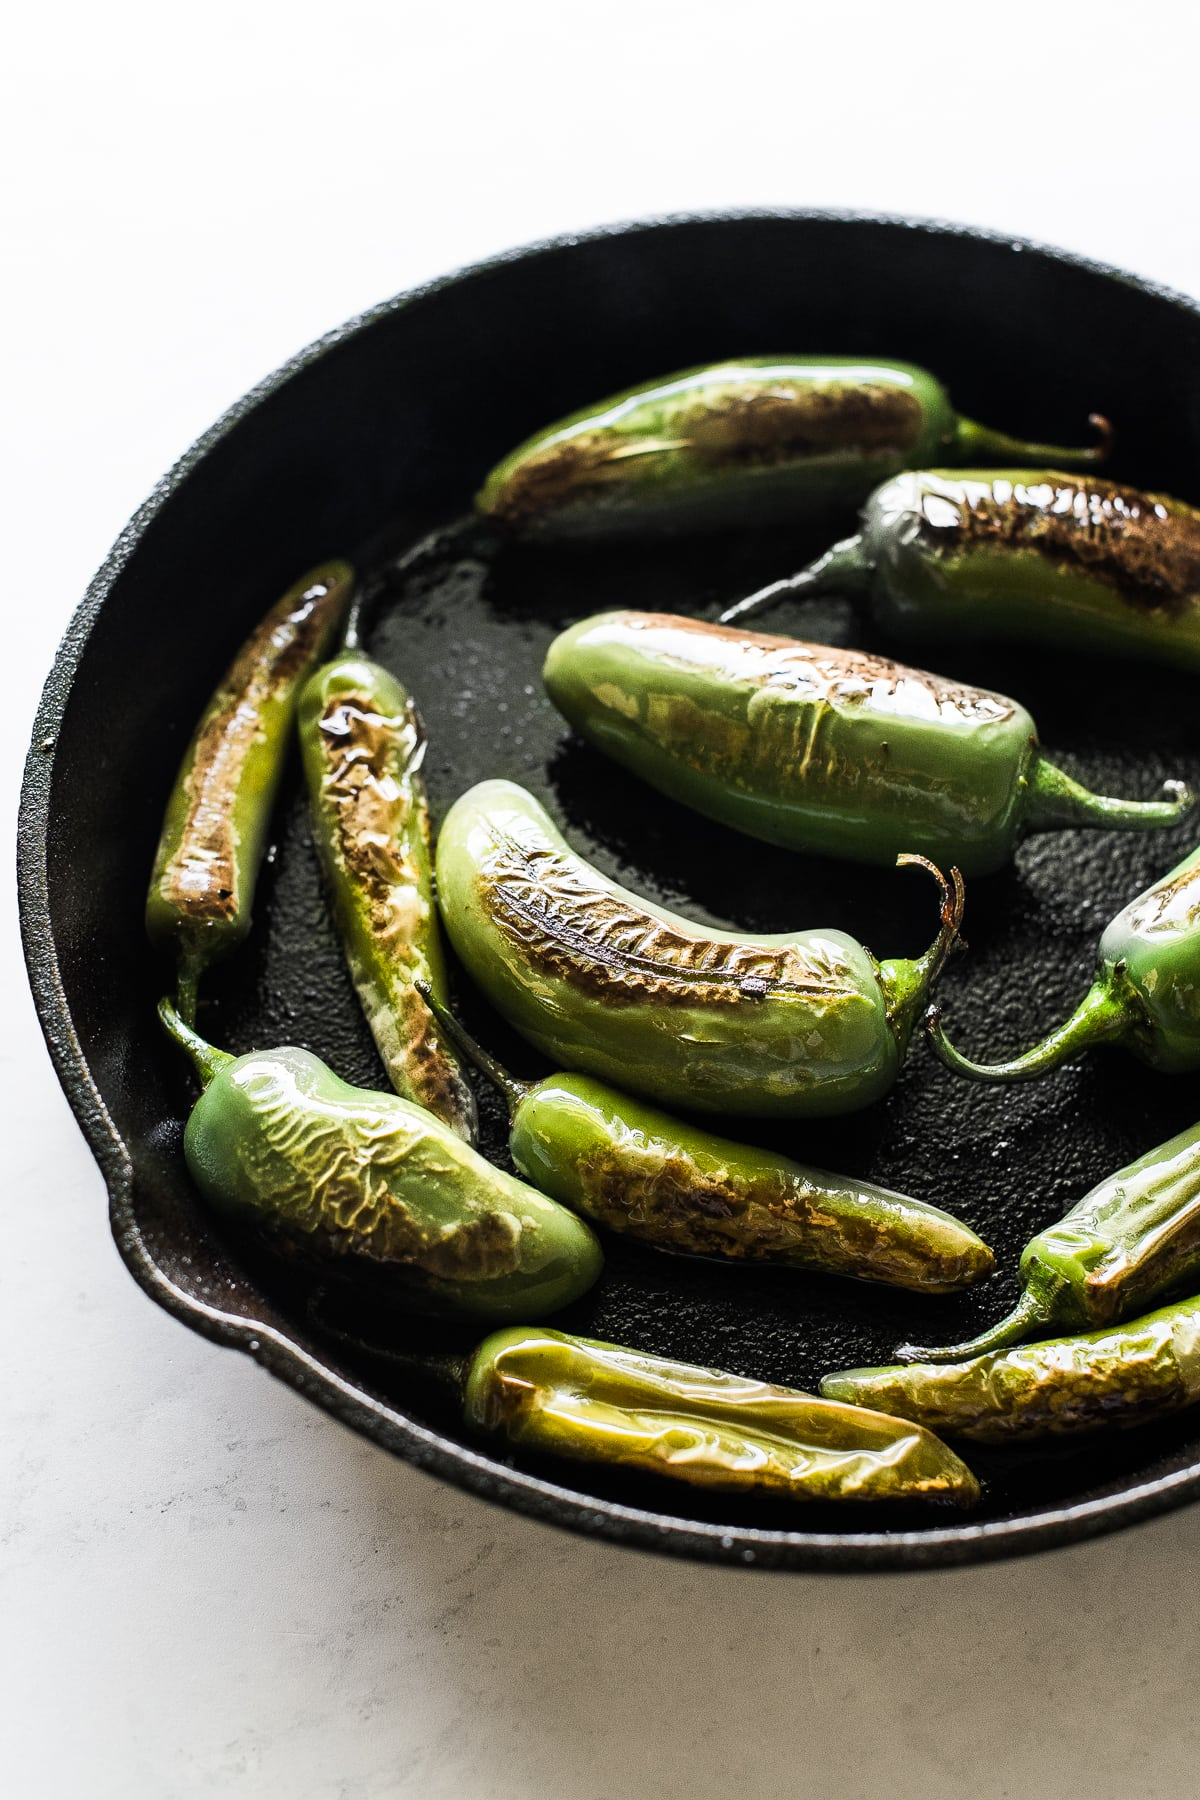 Jalapeno peppers in a skillet to make chiles torreados